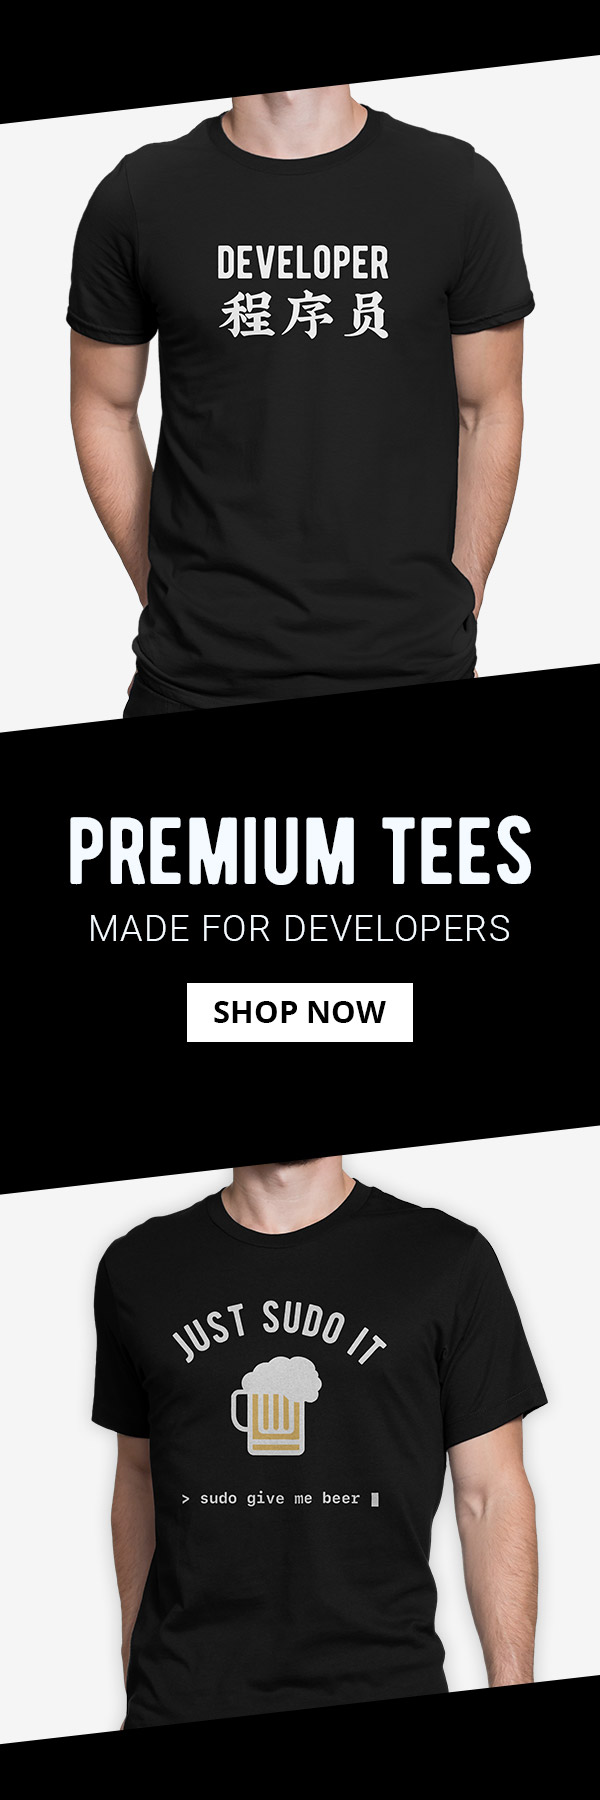 Premium Tees Made for Developers